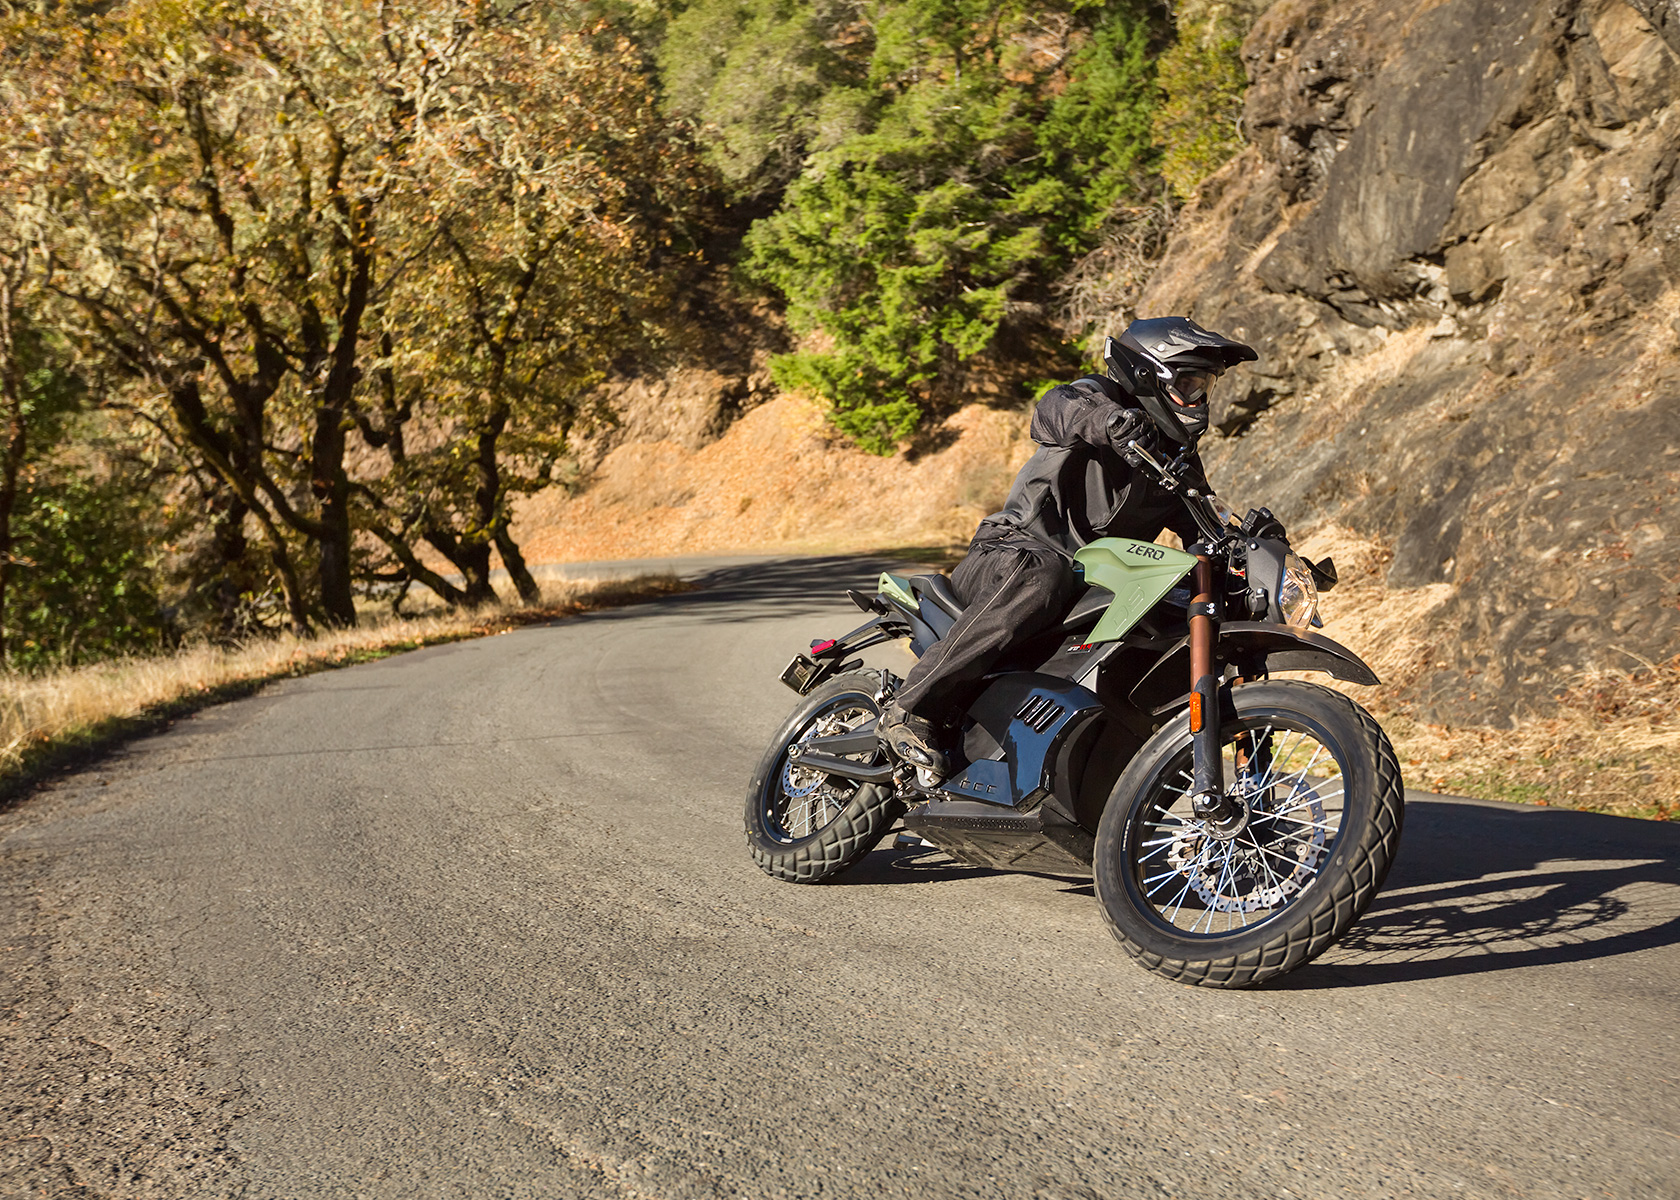 2013 Zero DS Electric Motorcycle: